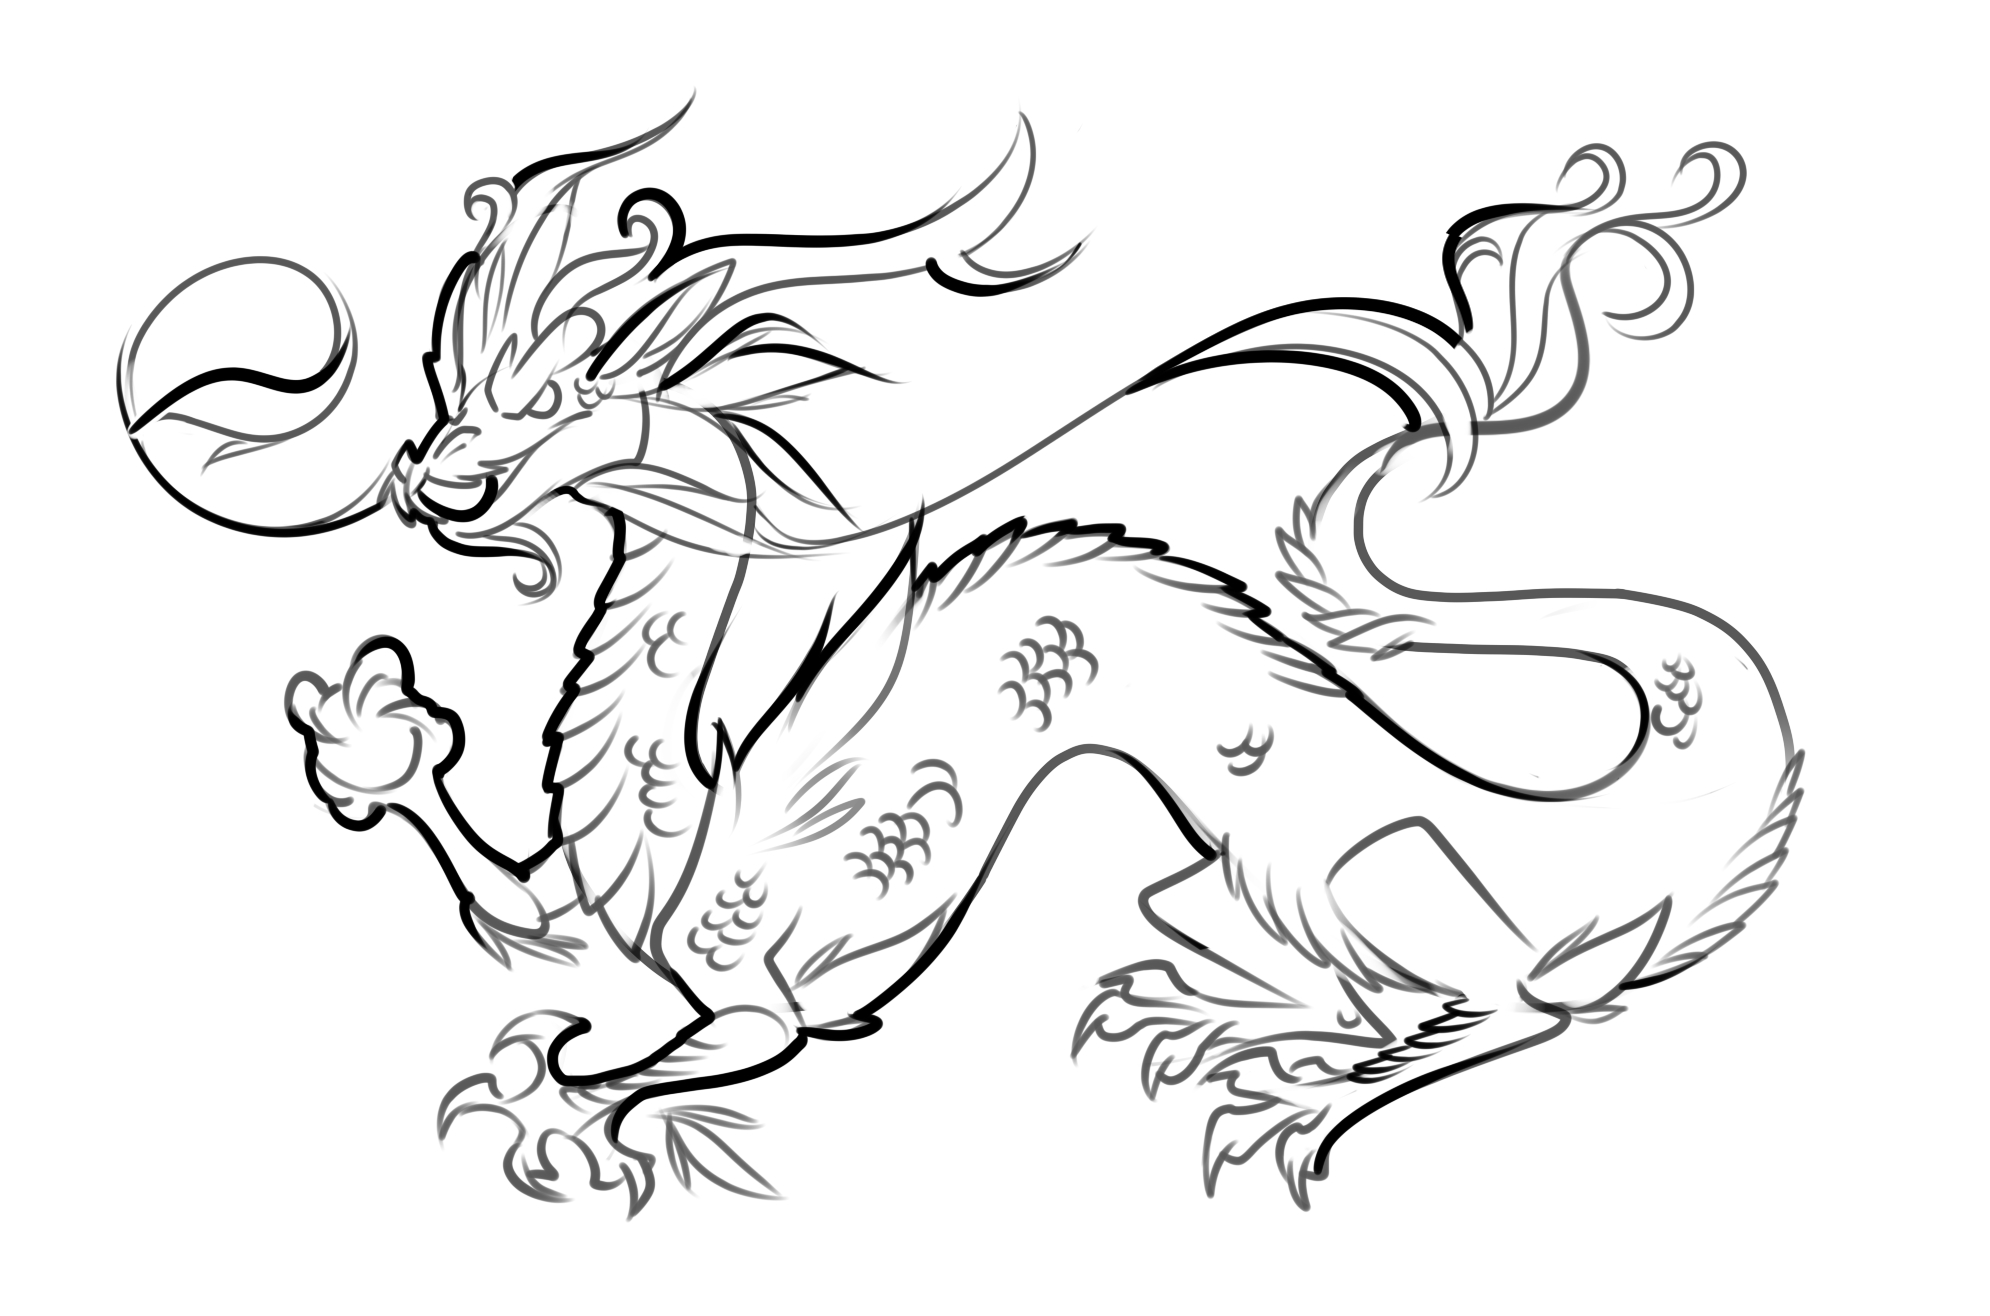 1990x1316 New Dragon Egg Coloring Pages Easter Egg Coloring Pages Free